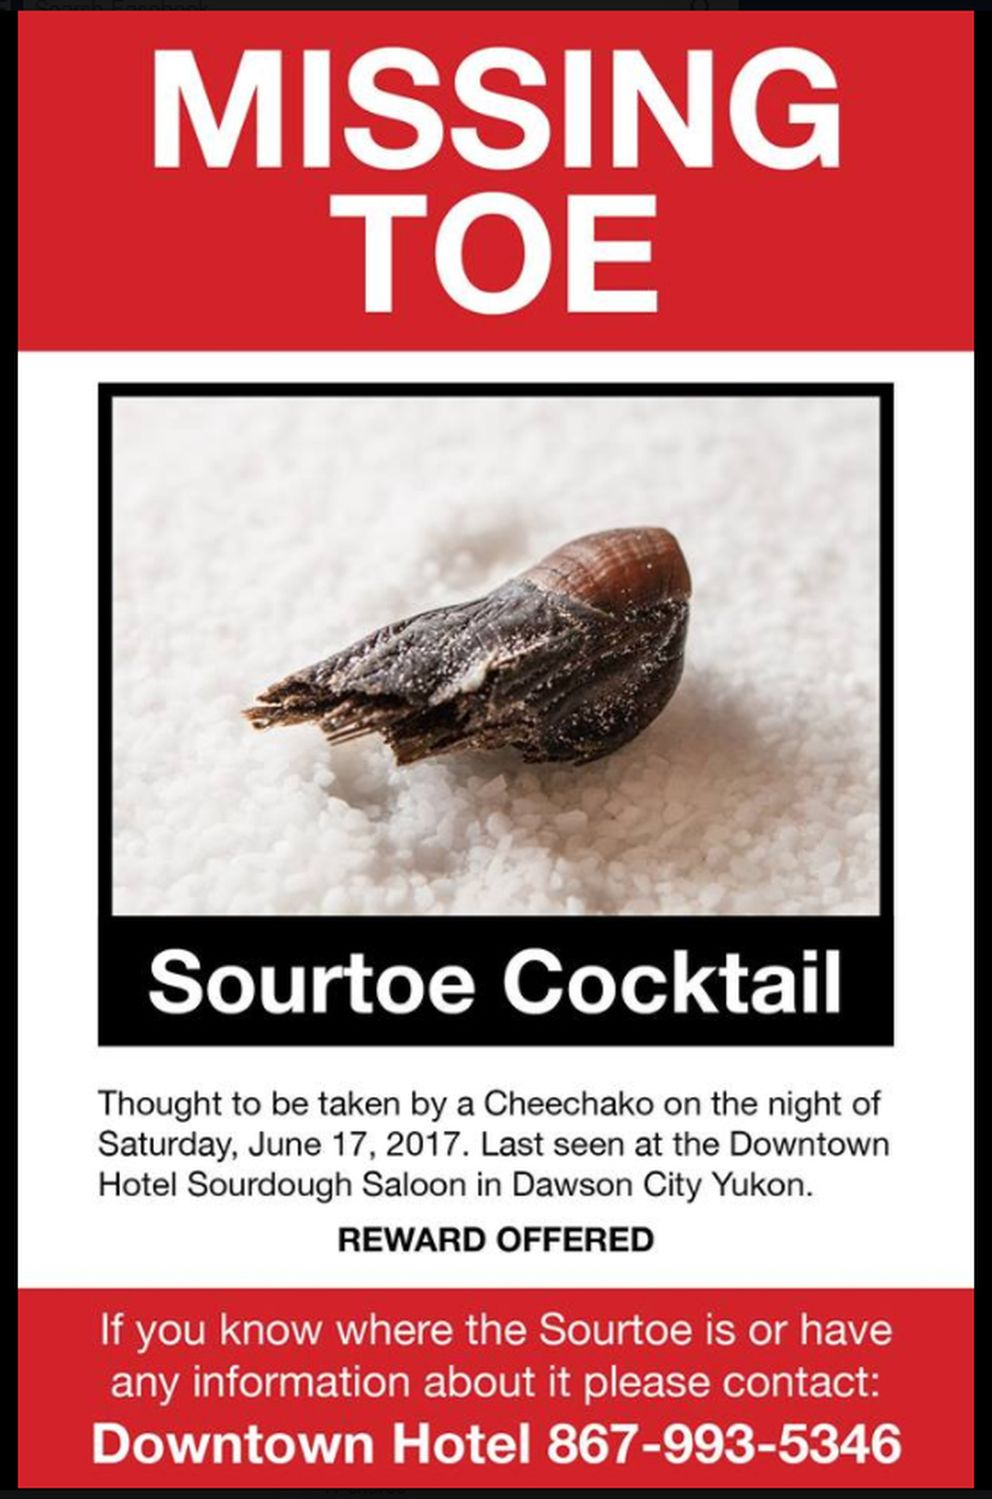 Missing toe poster